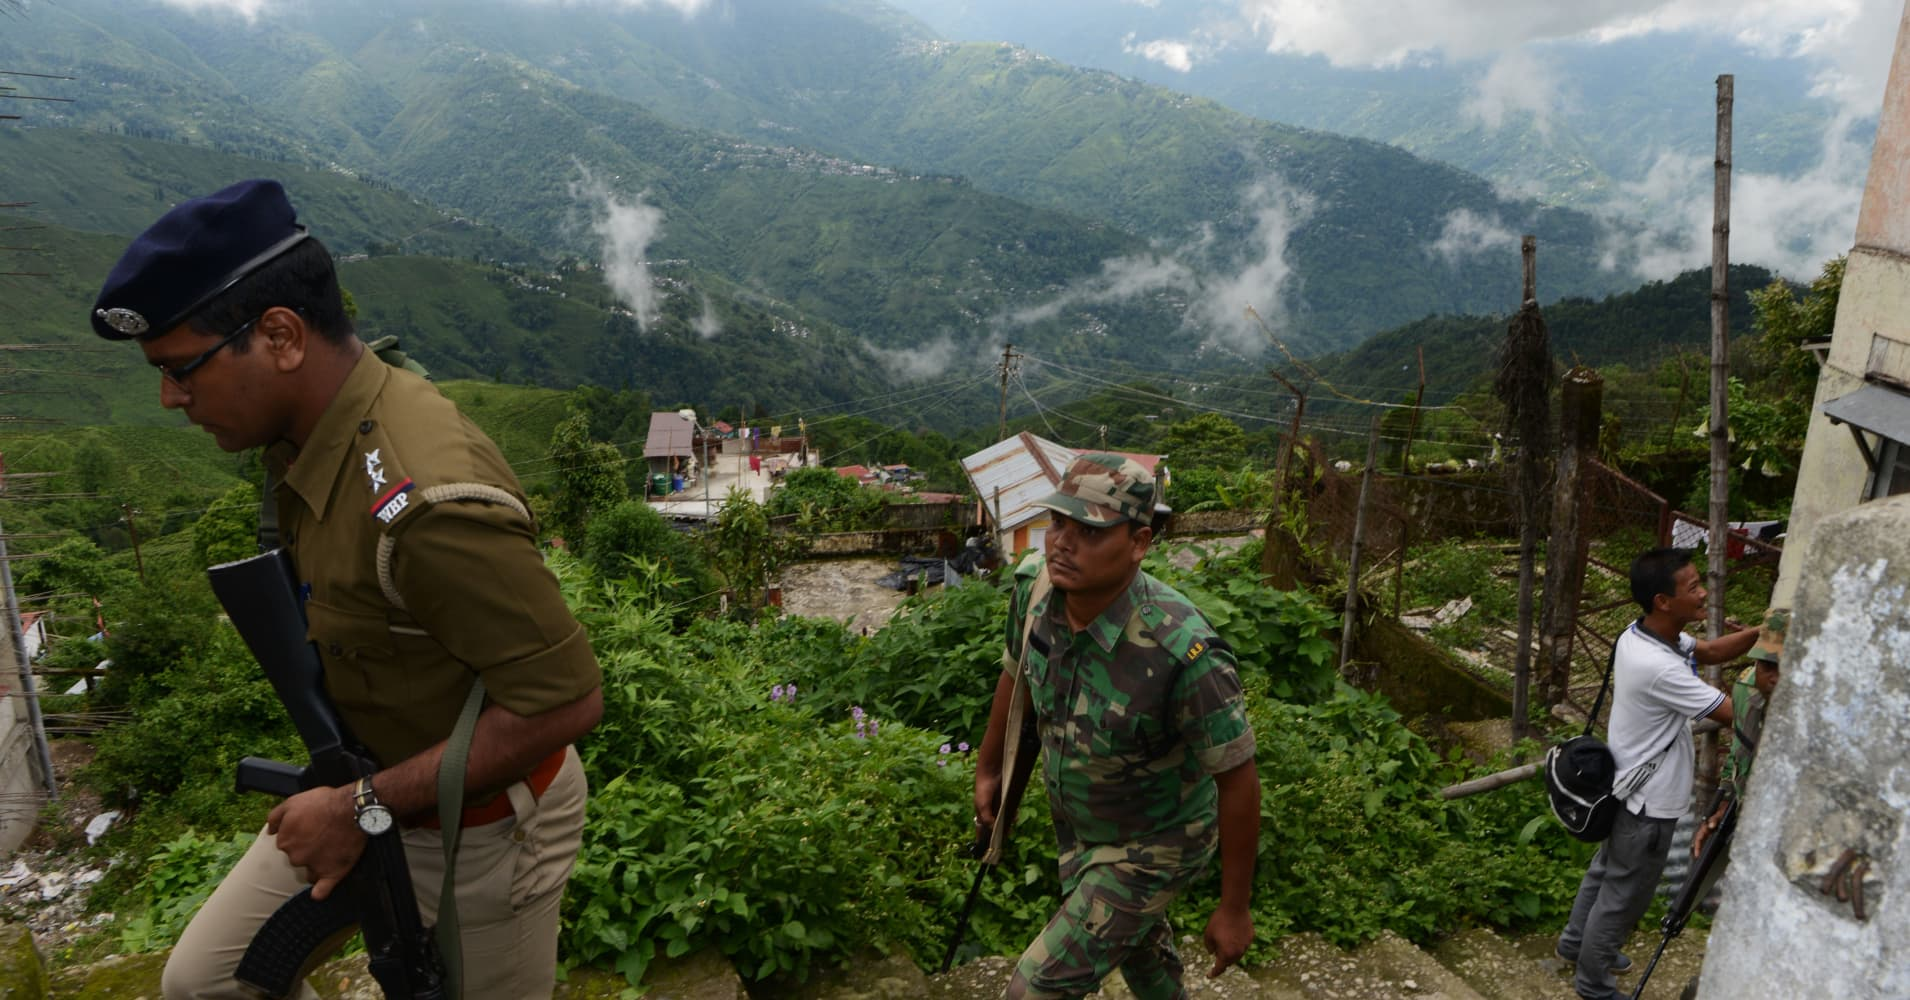 A storm in Darjeeling's teacup: India's famed tea nearing short supply